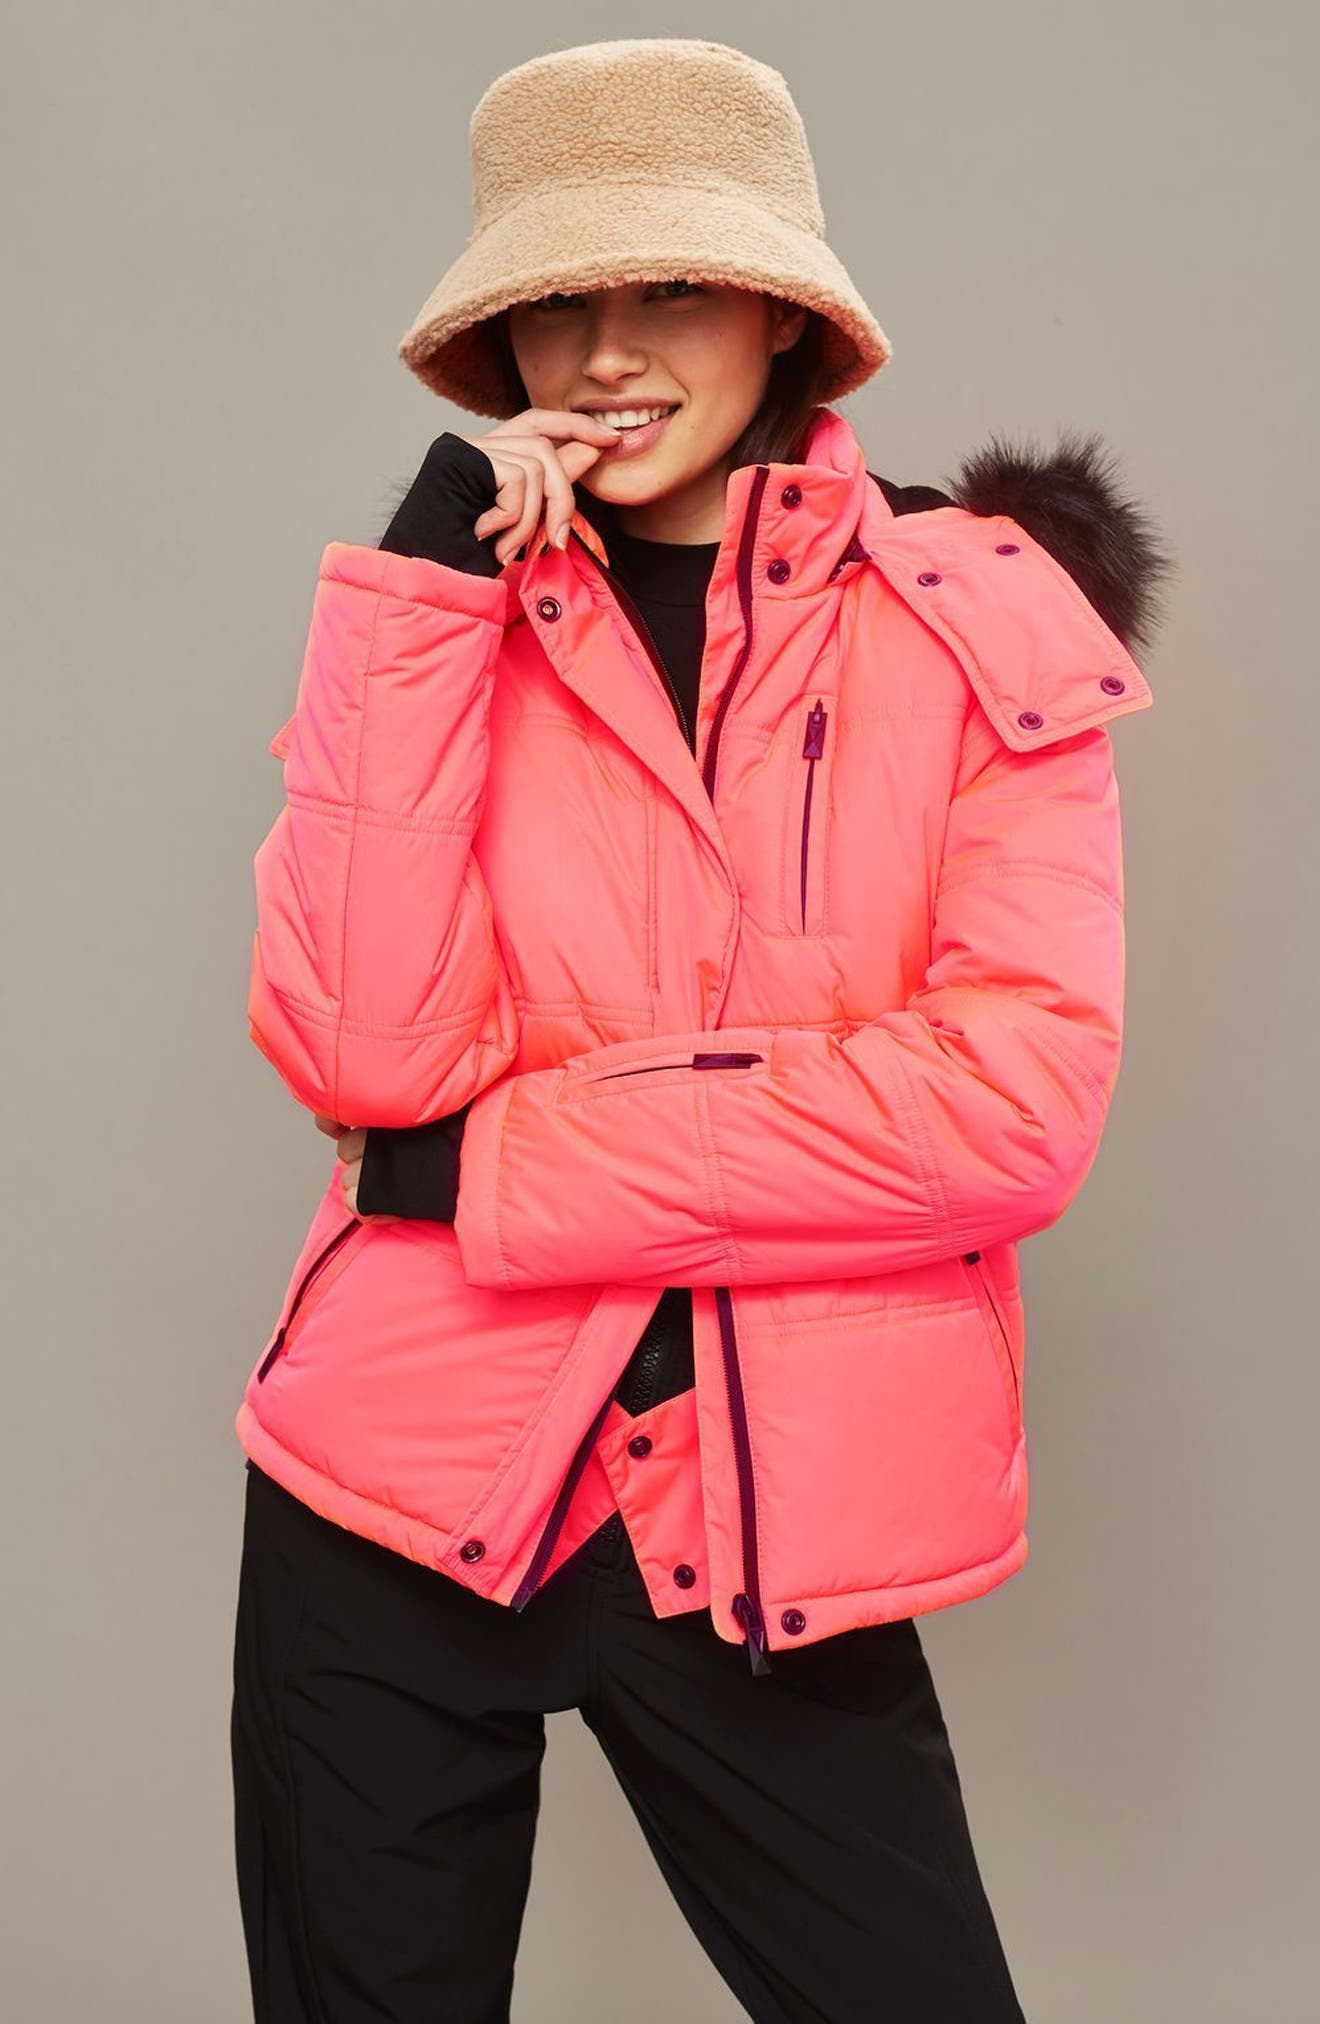 SNO Rio Faux Fur Hood Neon Puffer Jacket,                             Alternate thumbnail 13, color,